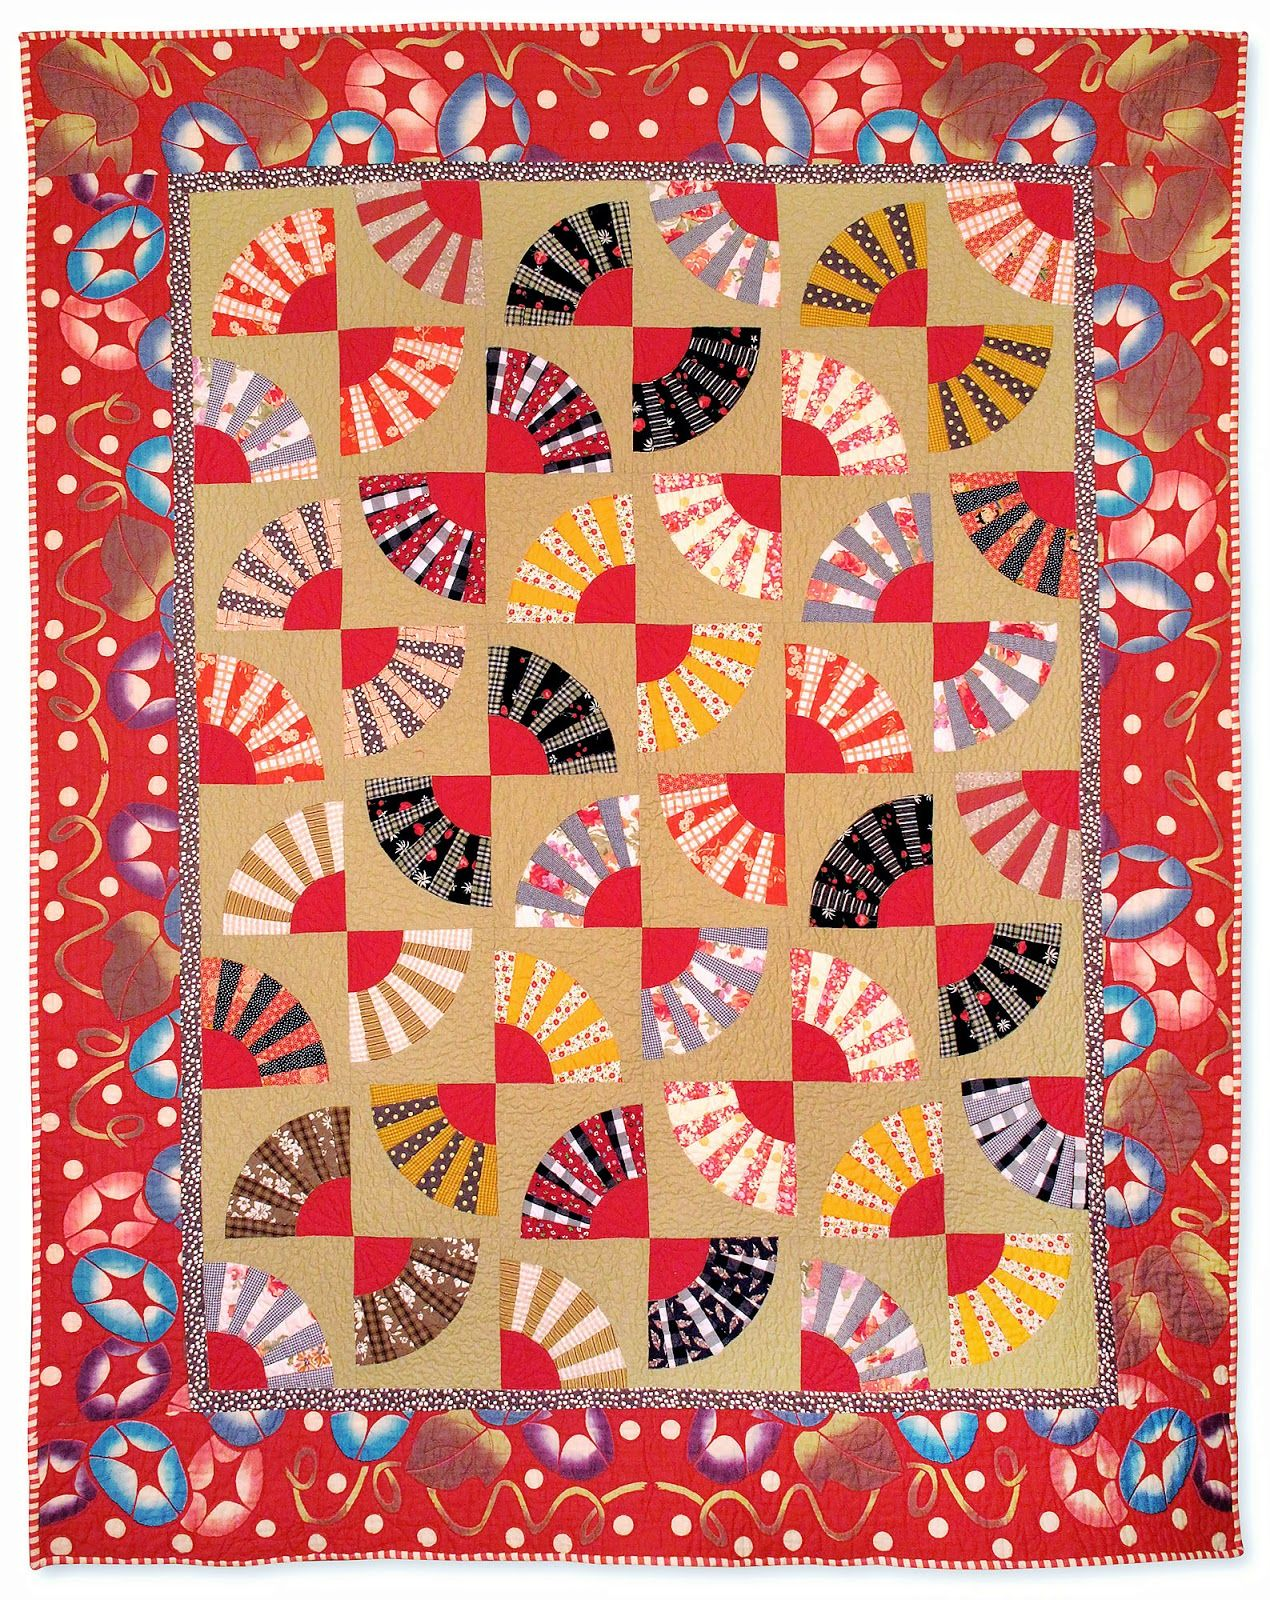 nifty quilts: A finish, a stencil, and a birthday!